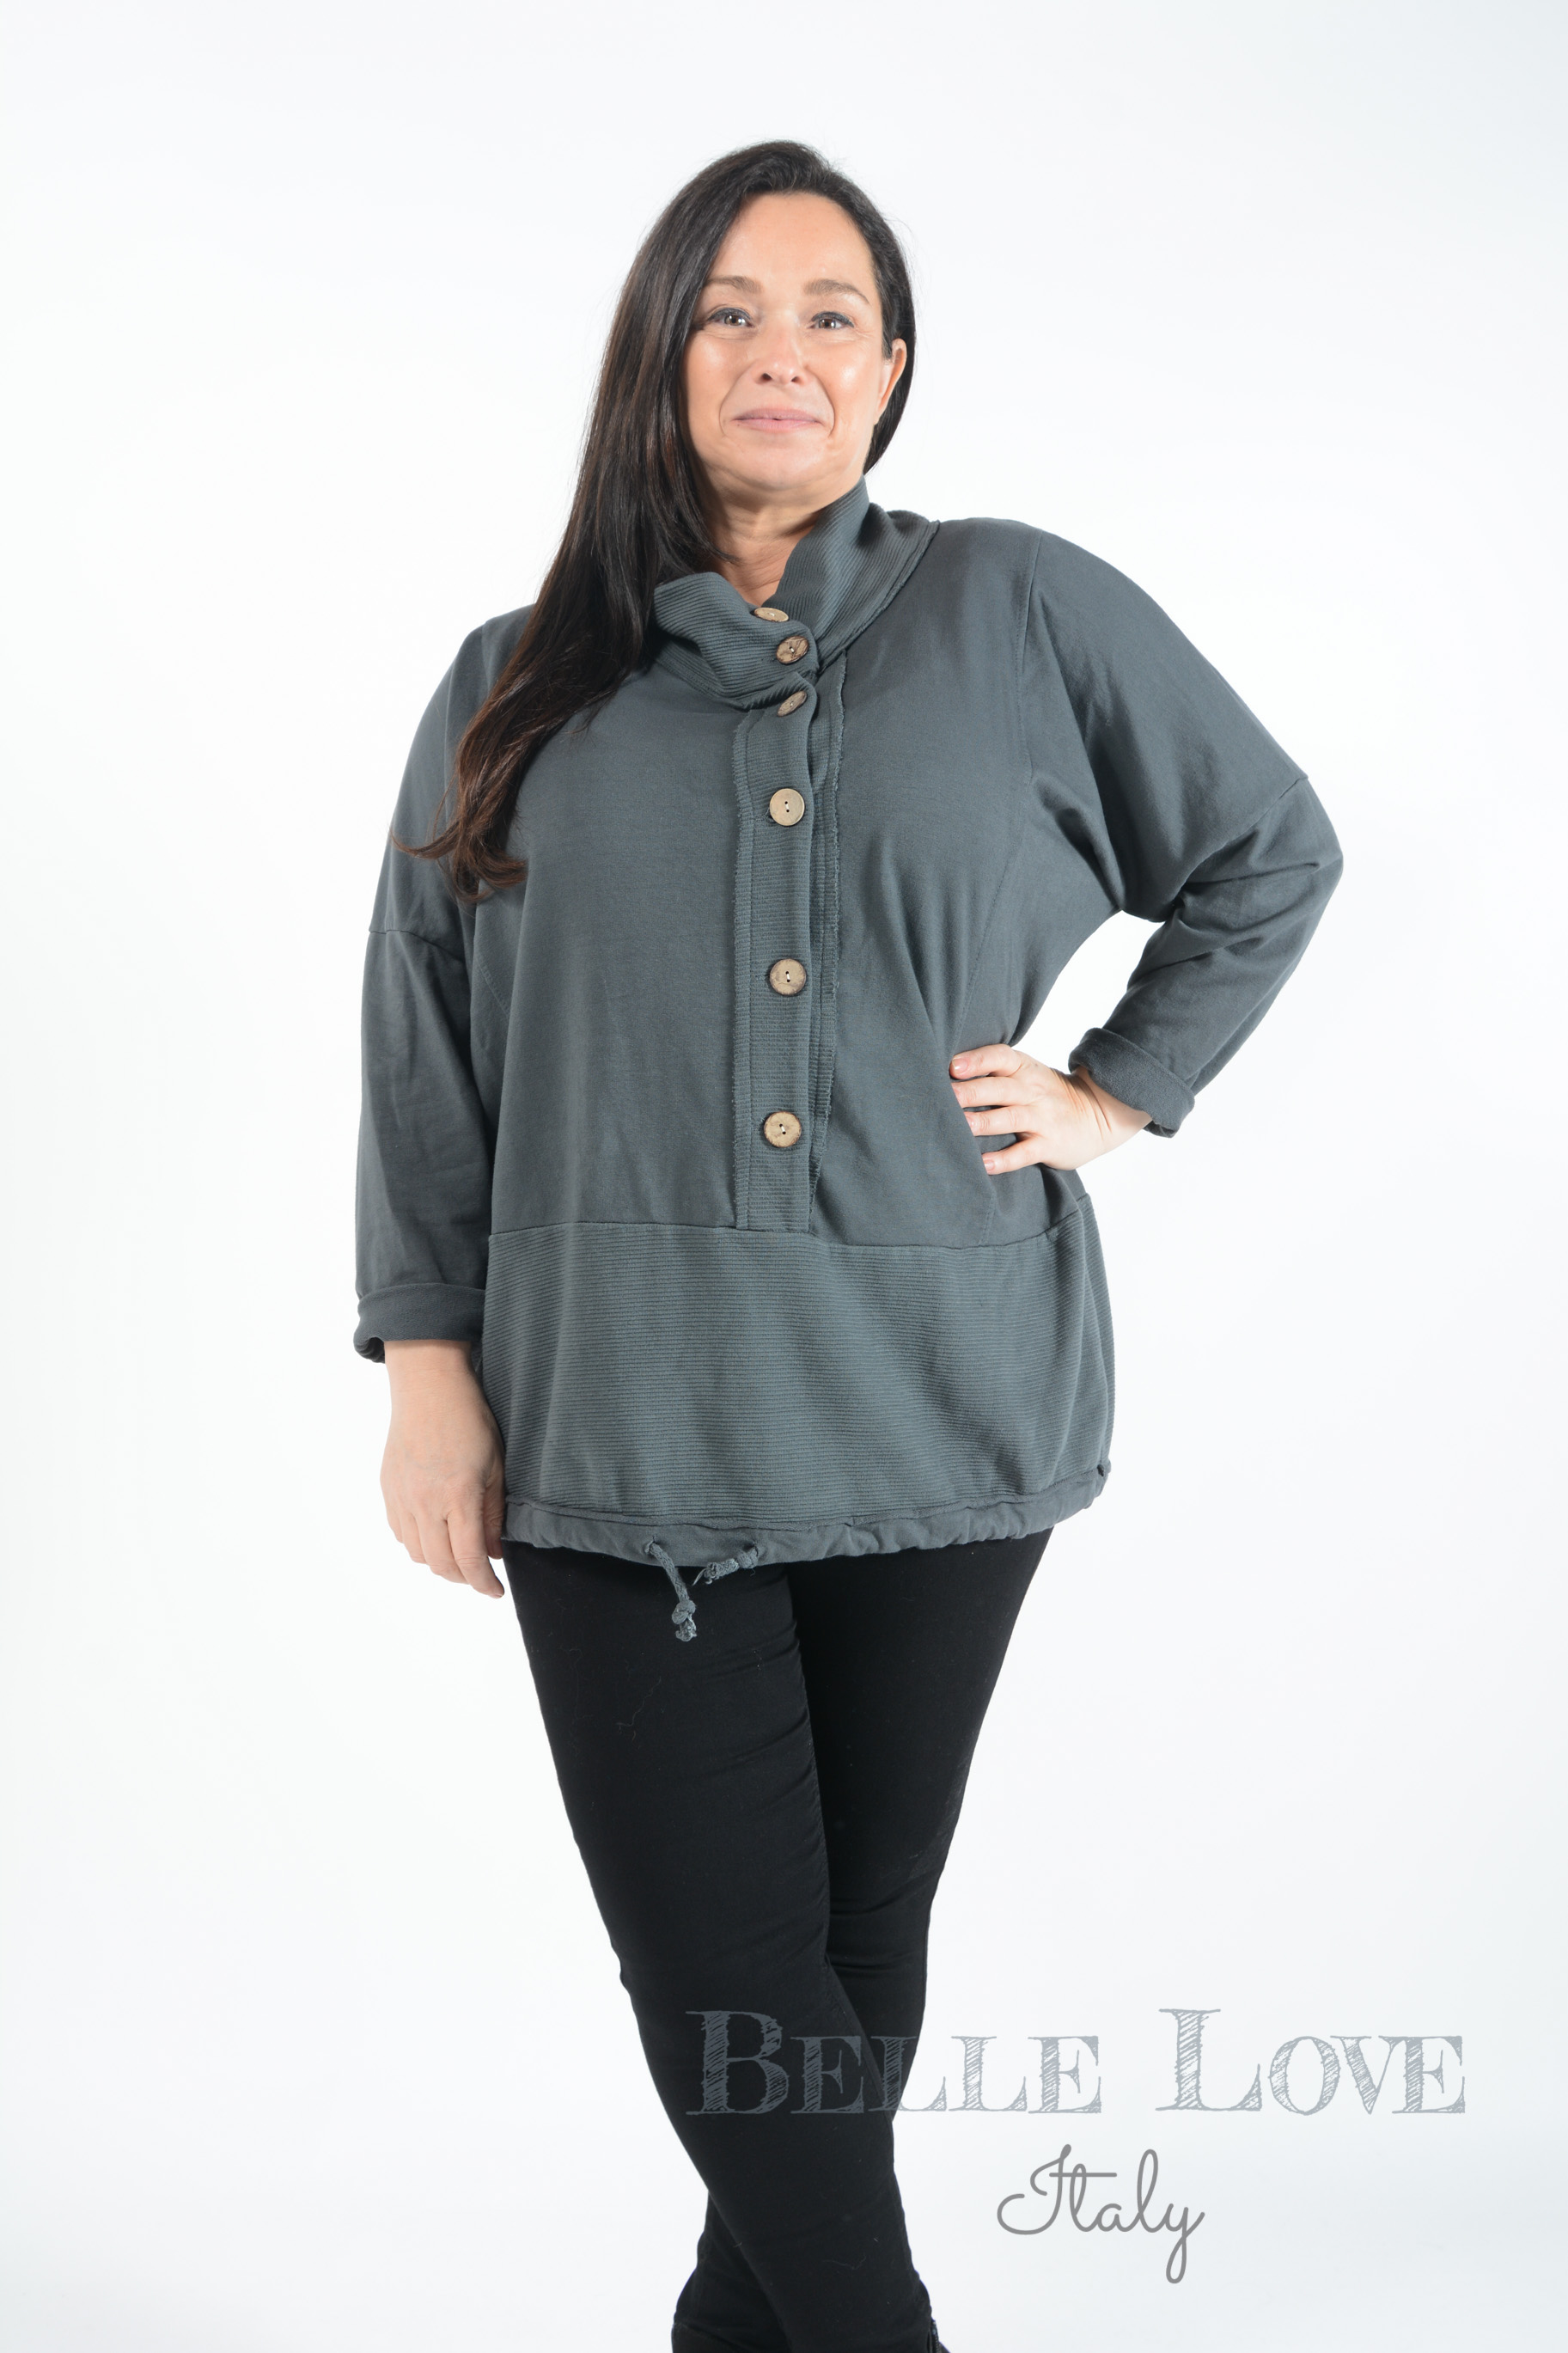 Belle Love Italy Josie Button Front Top